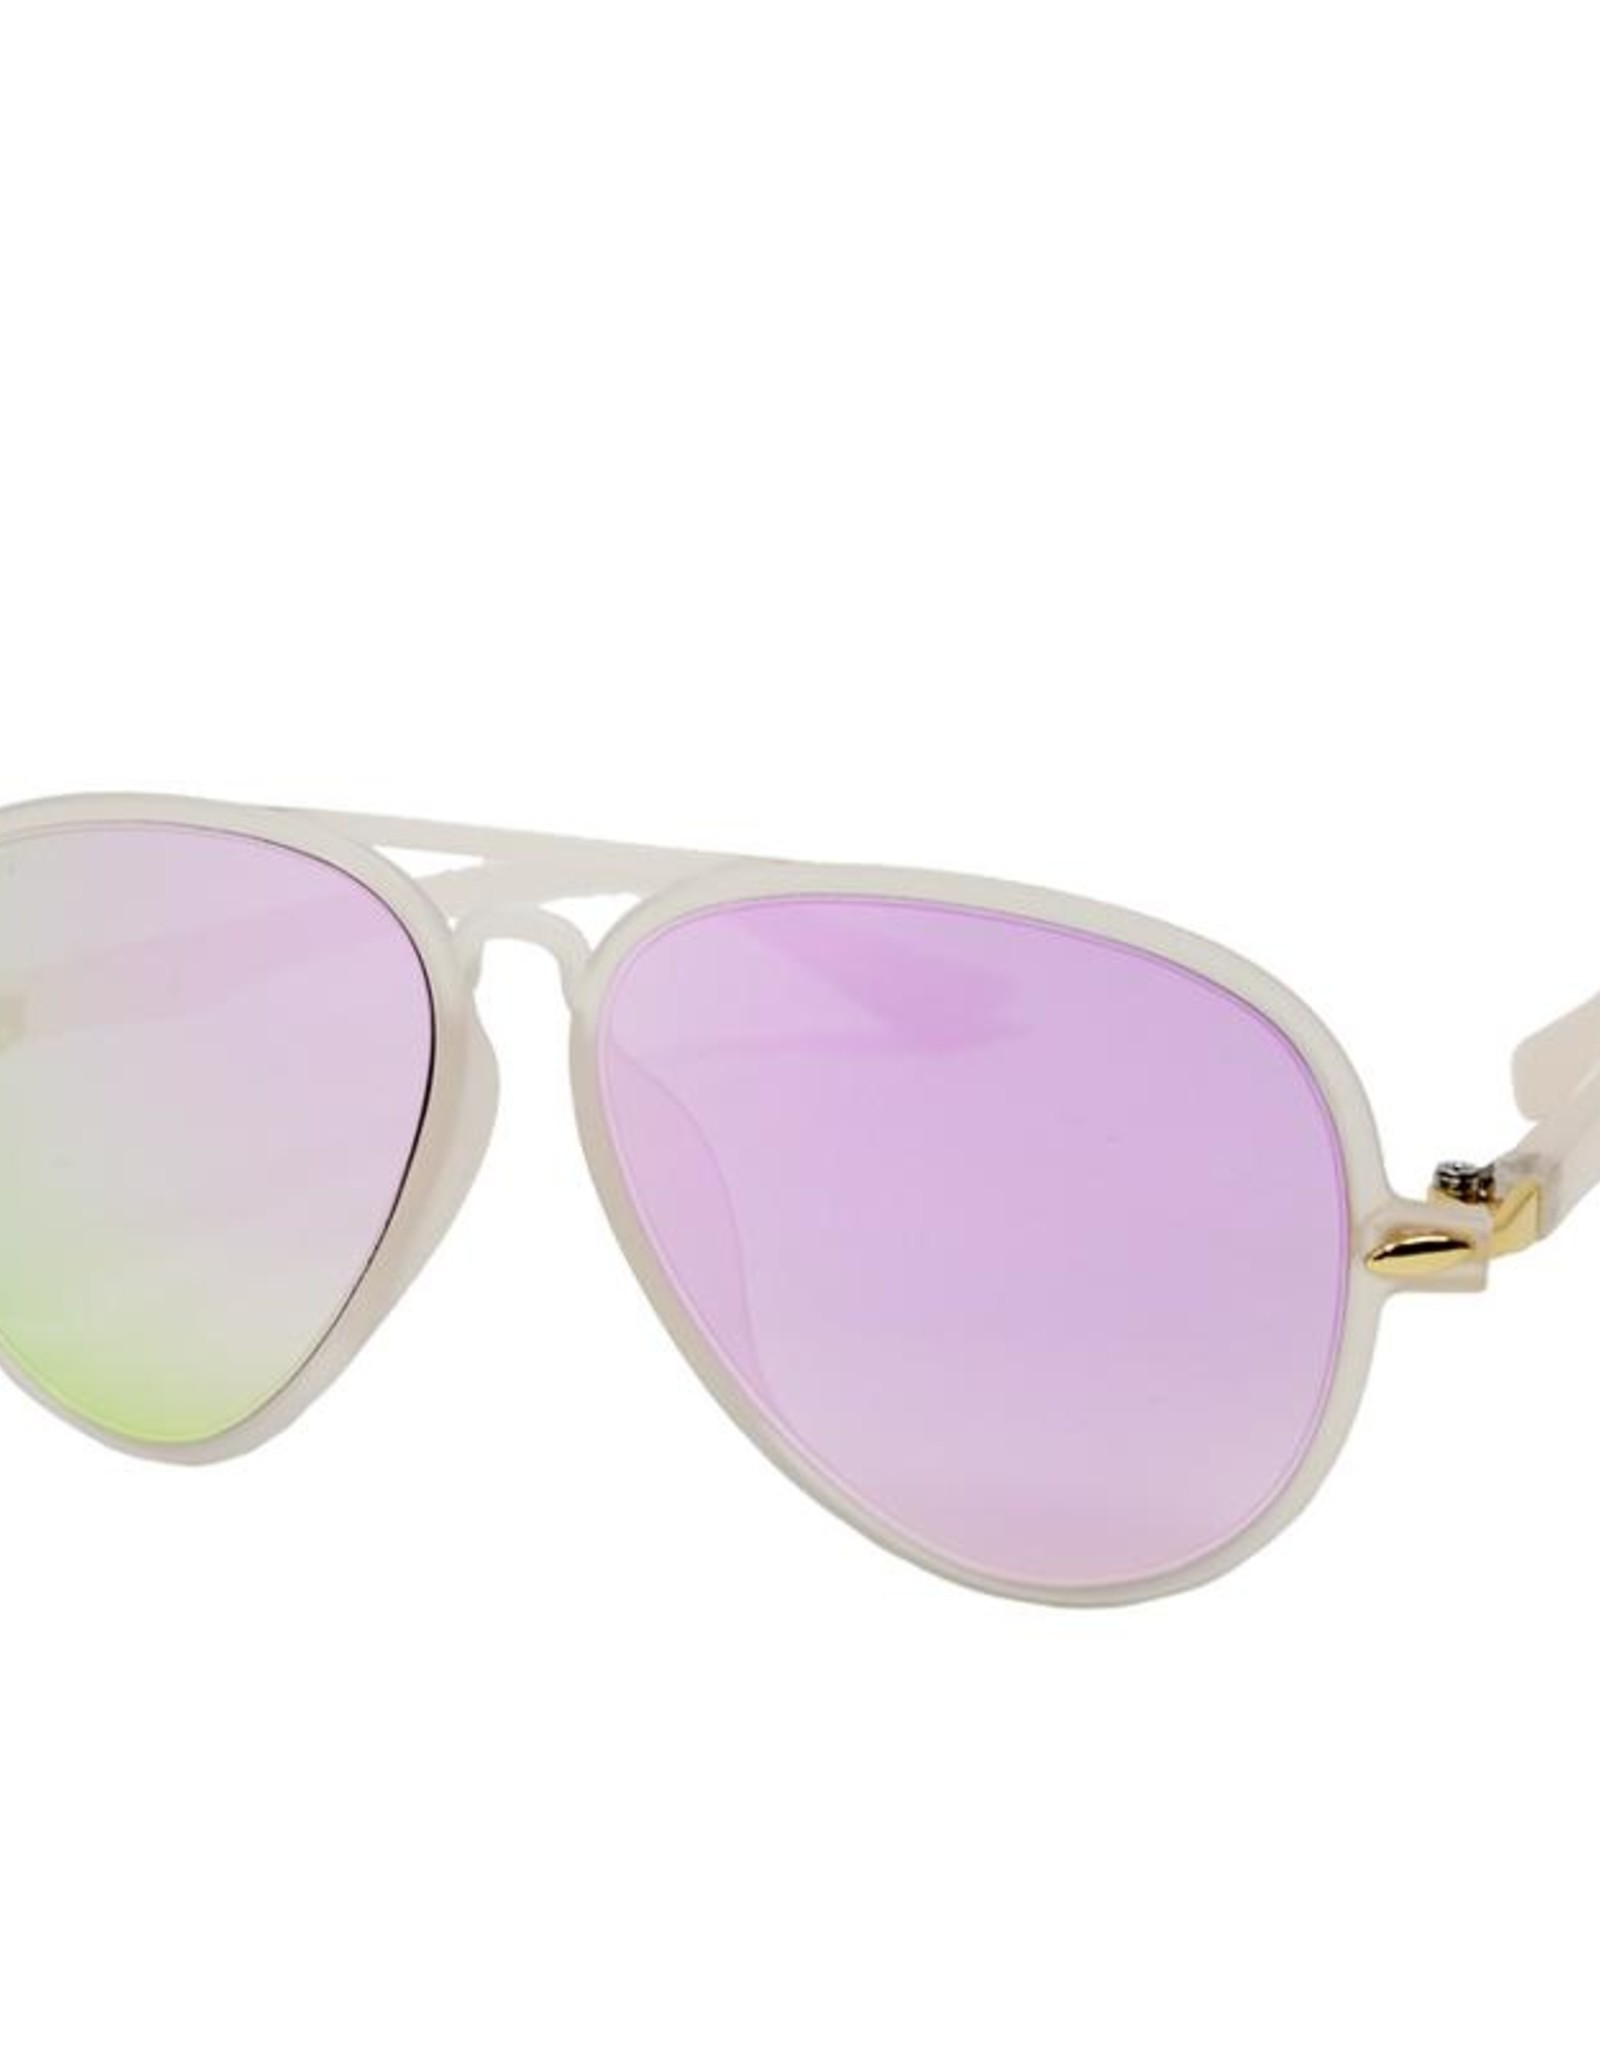 Zumi Gems Aviator Sunglasses